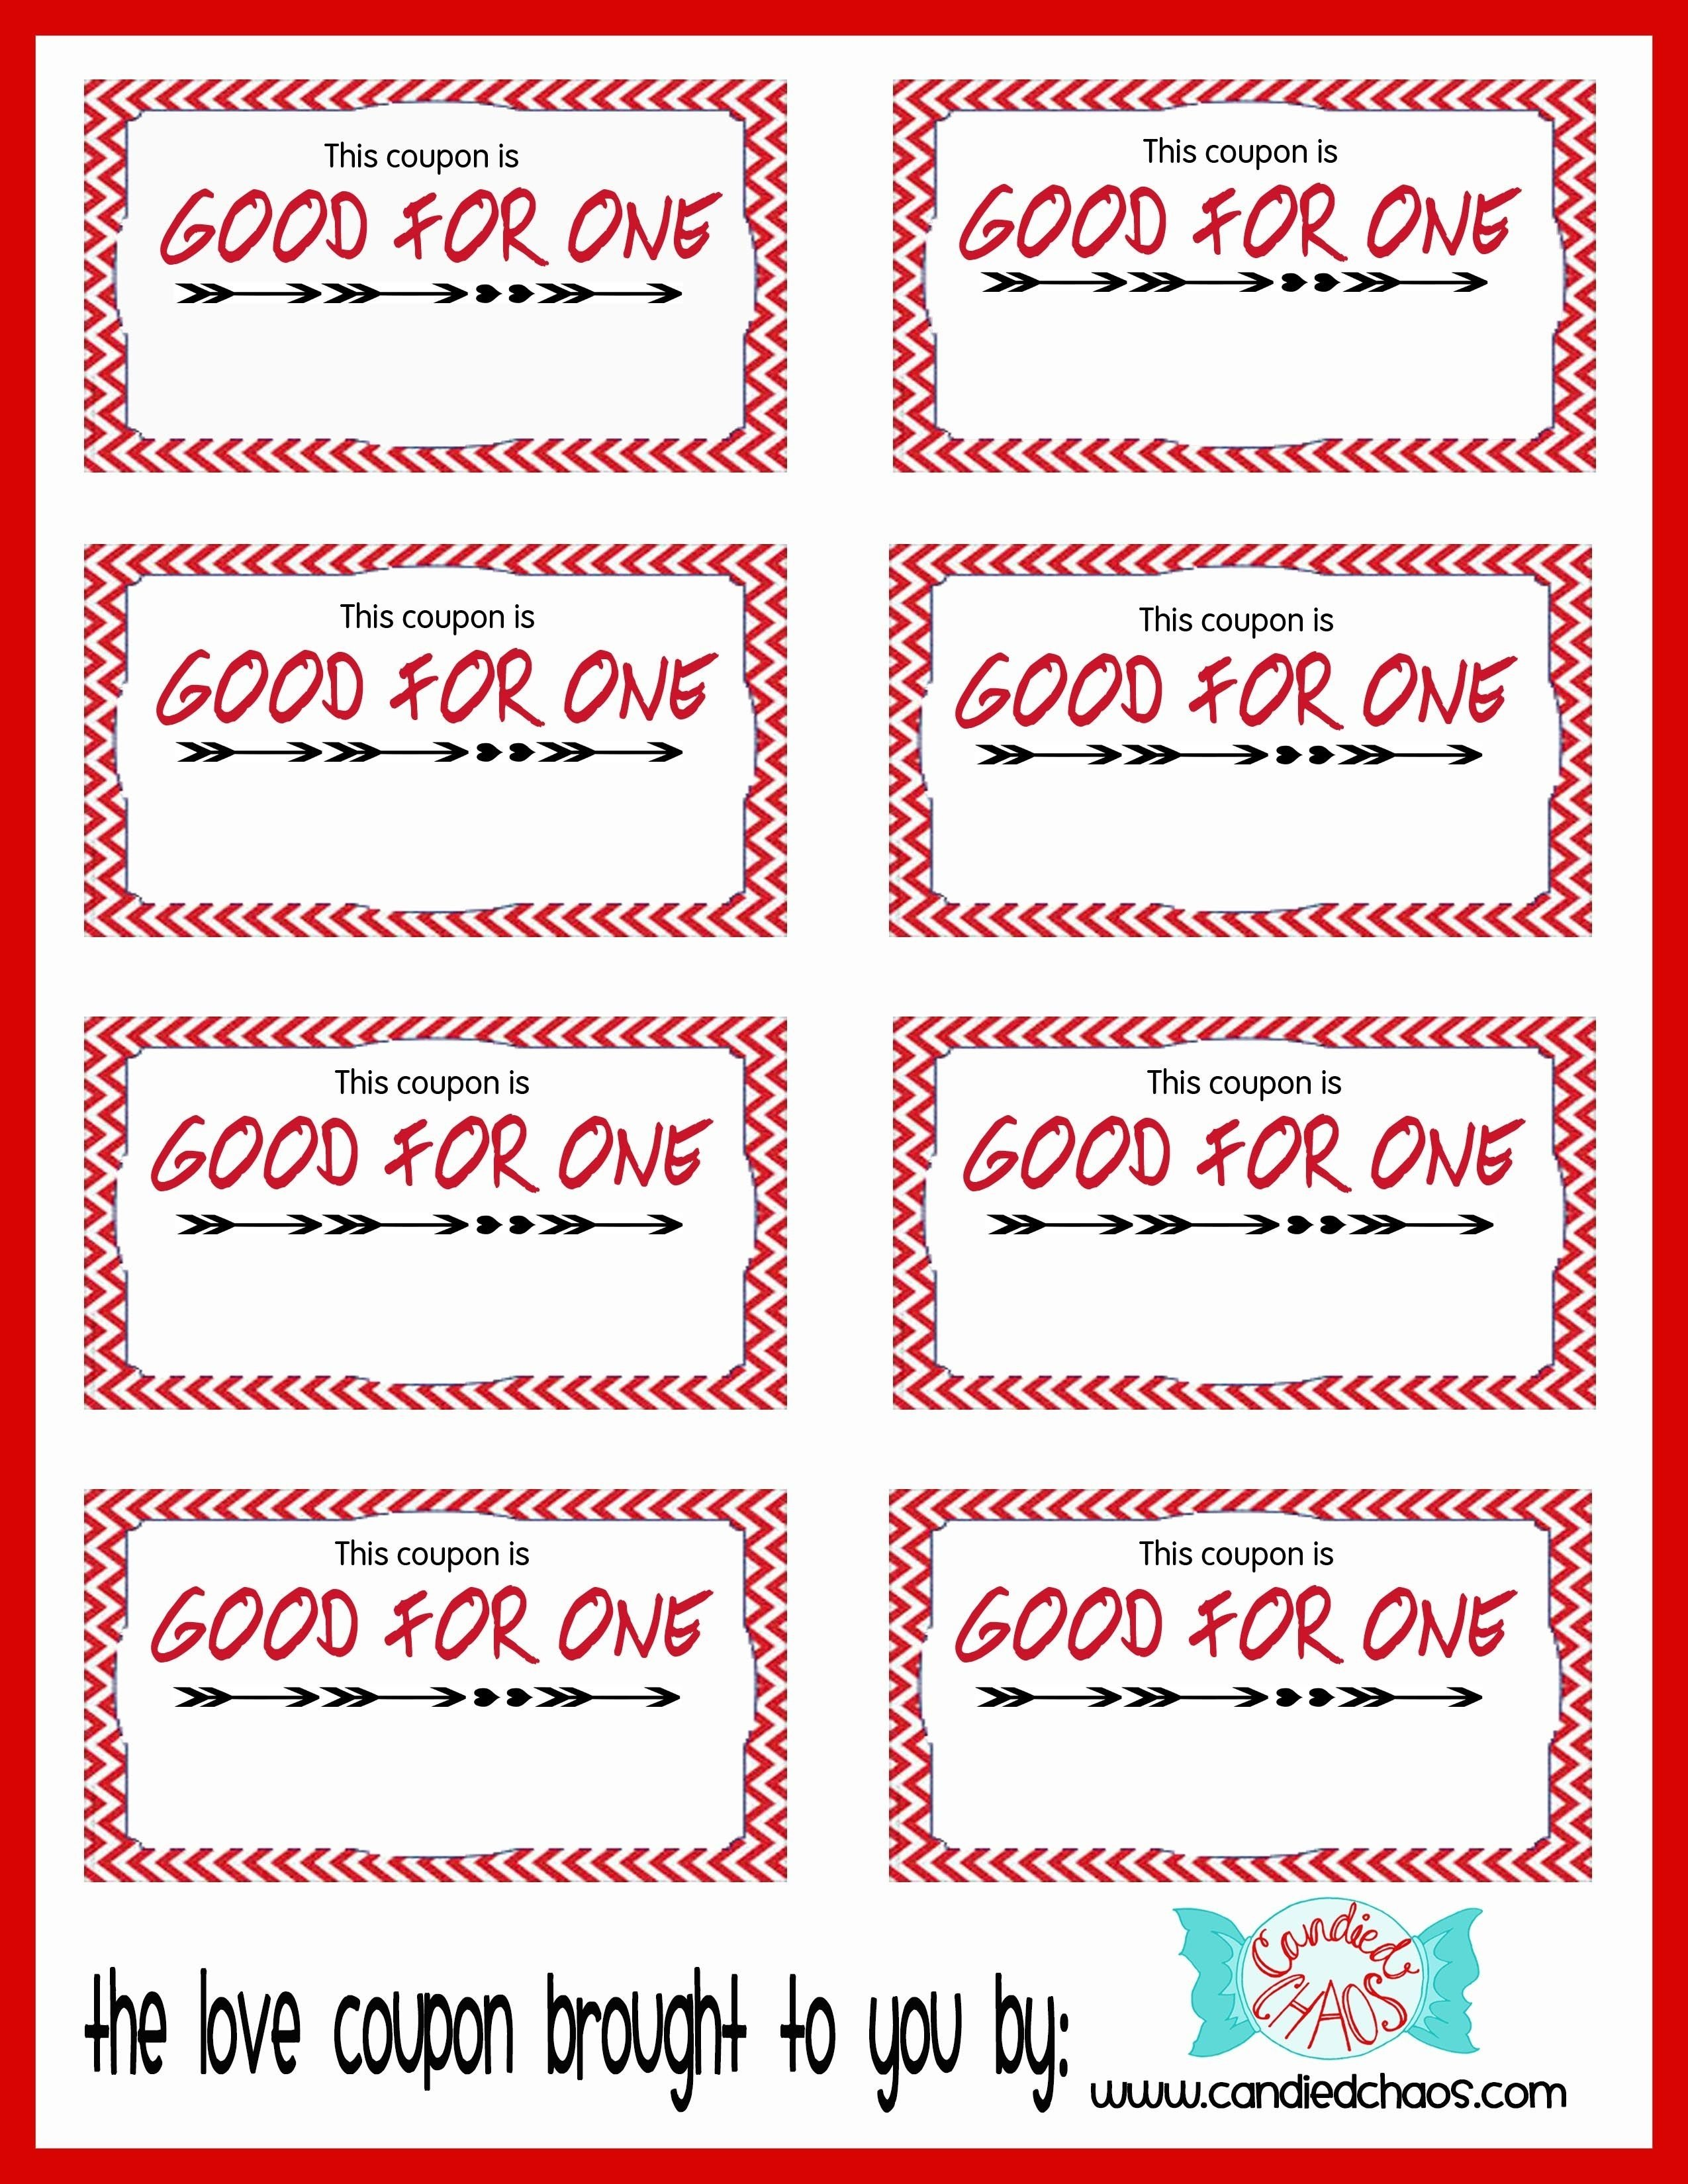 10 Wonderful Coupon Book Ideas For Girlfriend i will be honest valentines day isnt really a big thing in our 5 2021